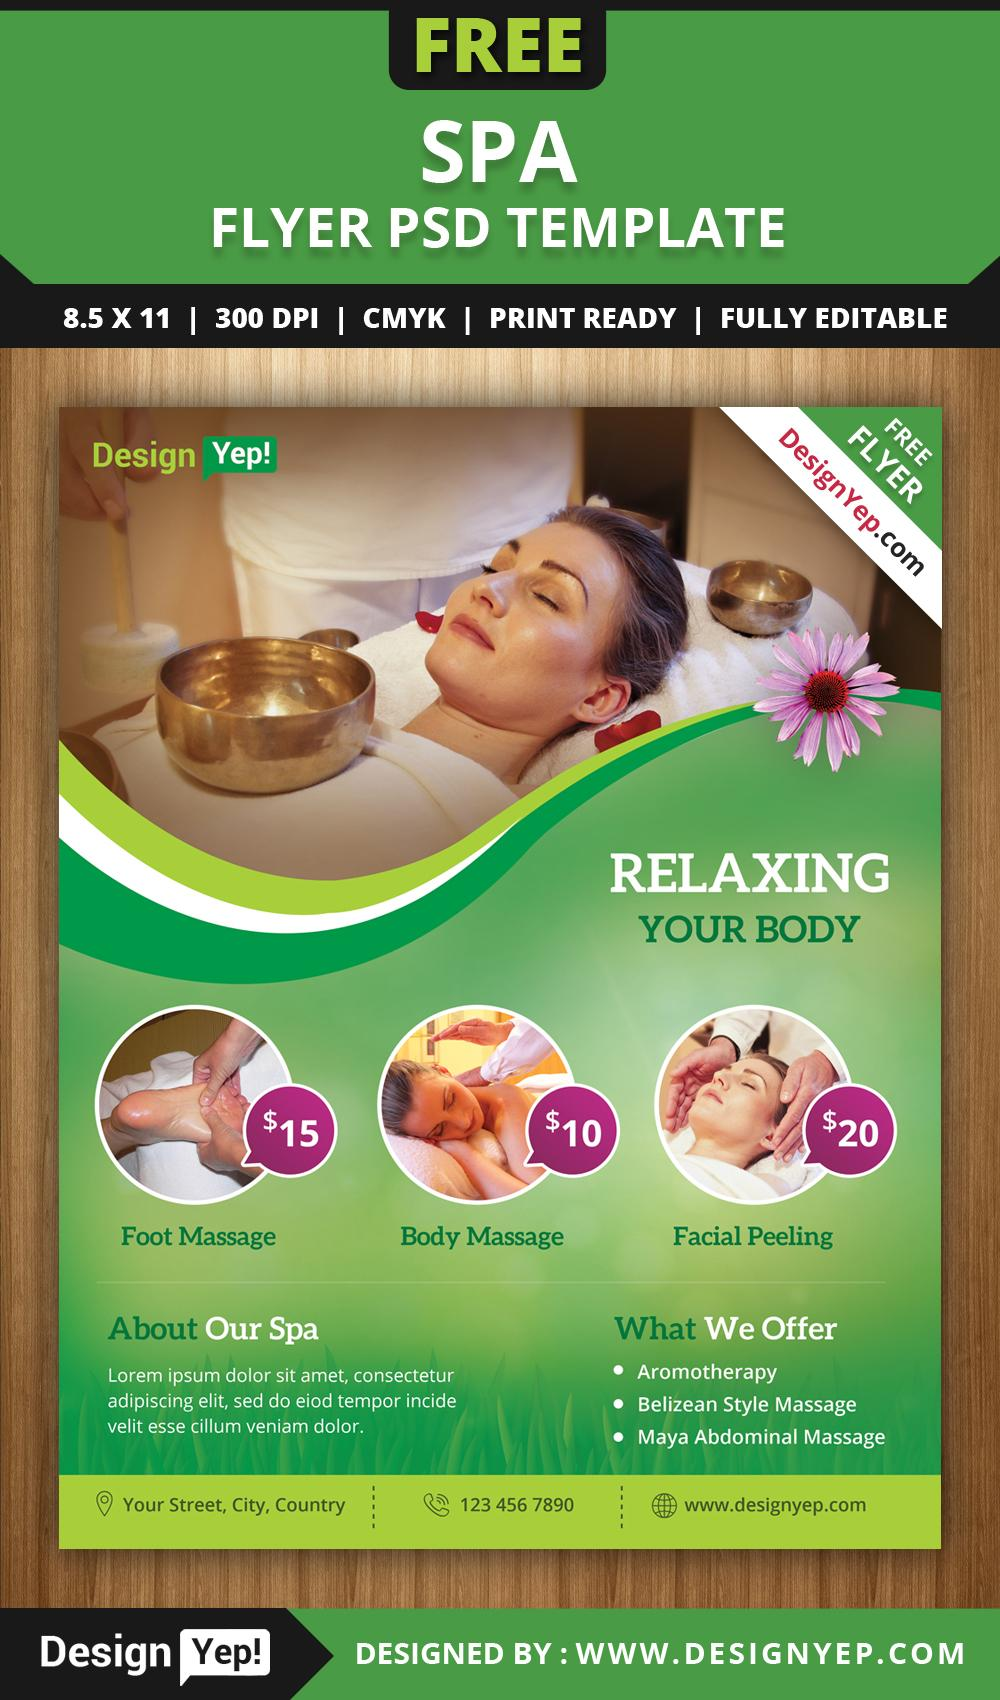 Free Spa Flyer Template Download